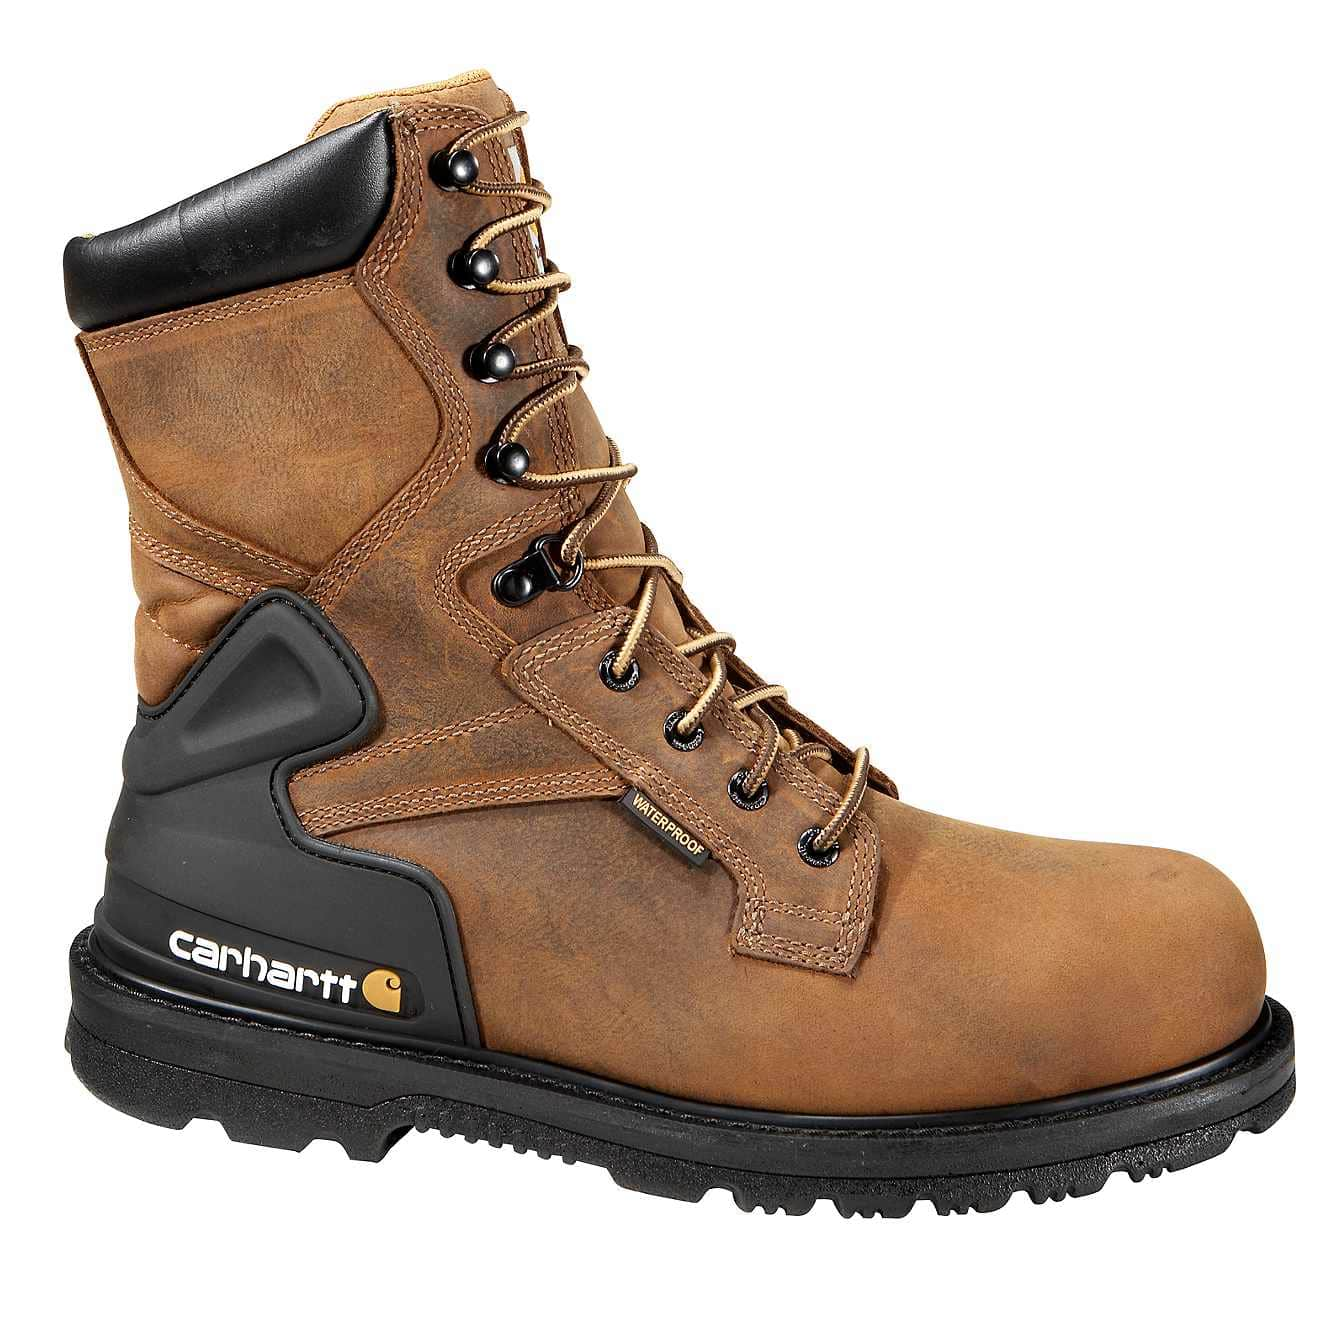 Picture of 8-Inch Steel Toe Work Boot in Bison Brown Oil Tan